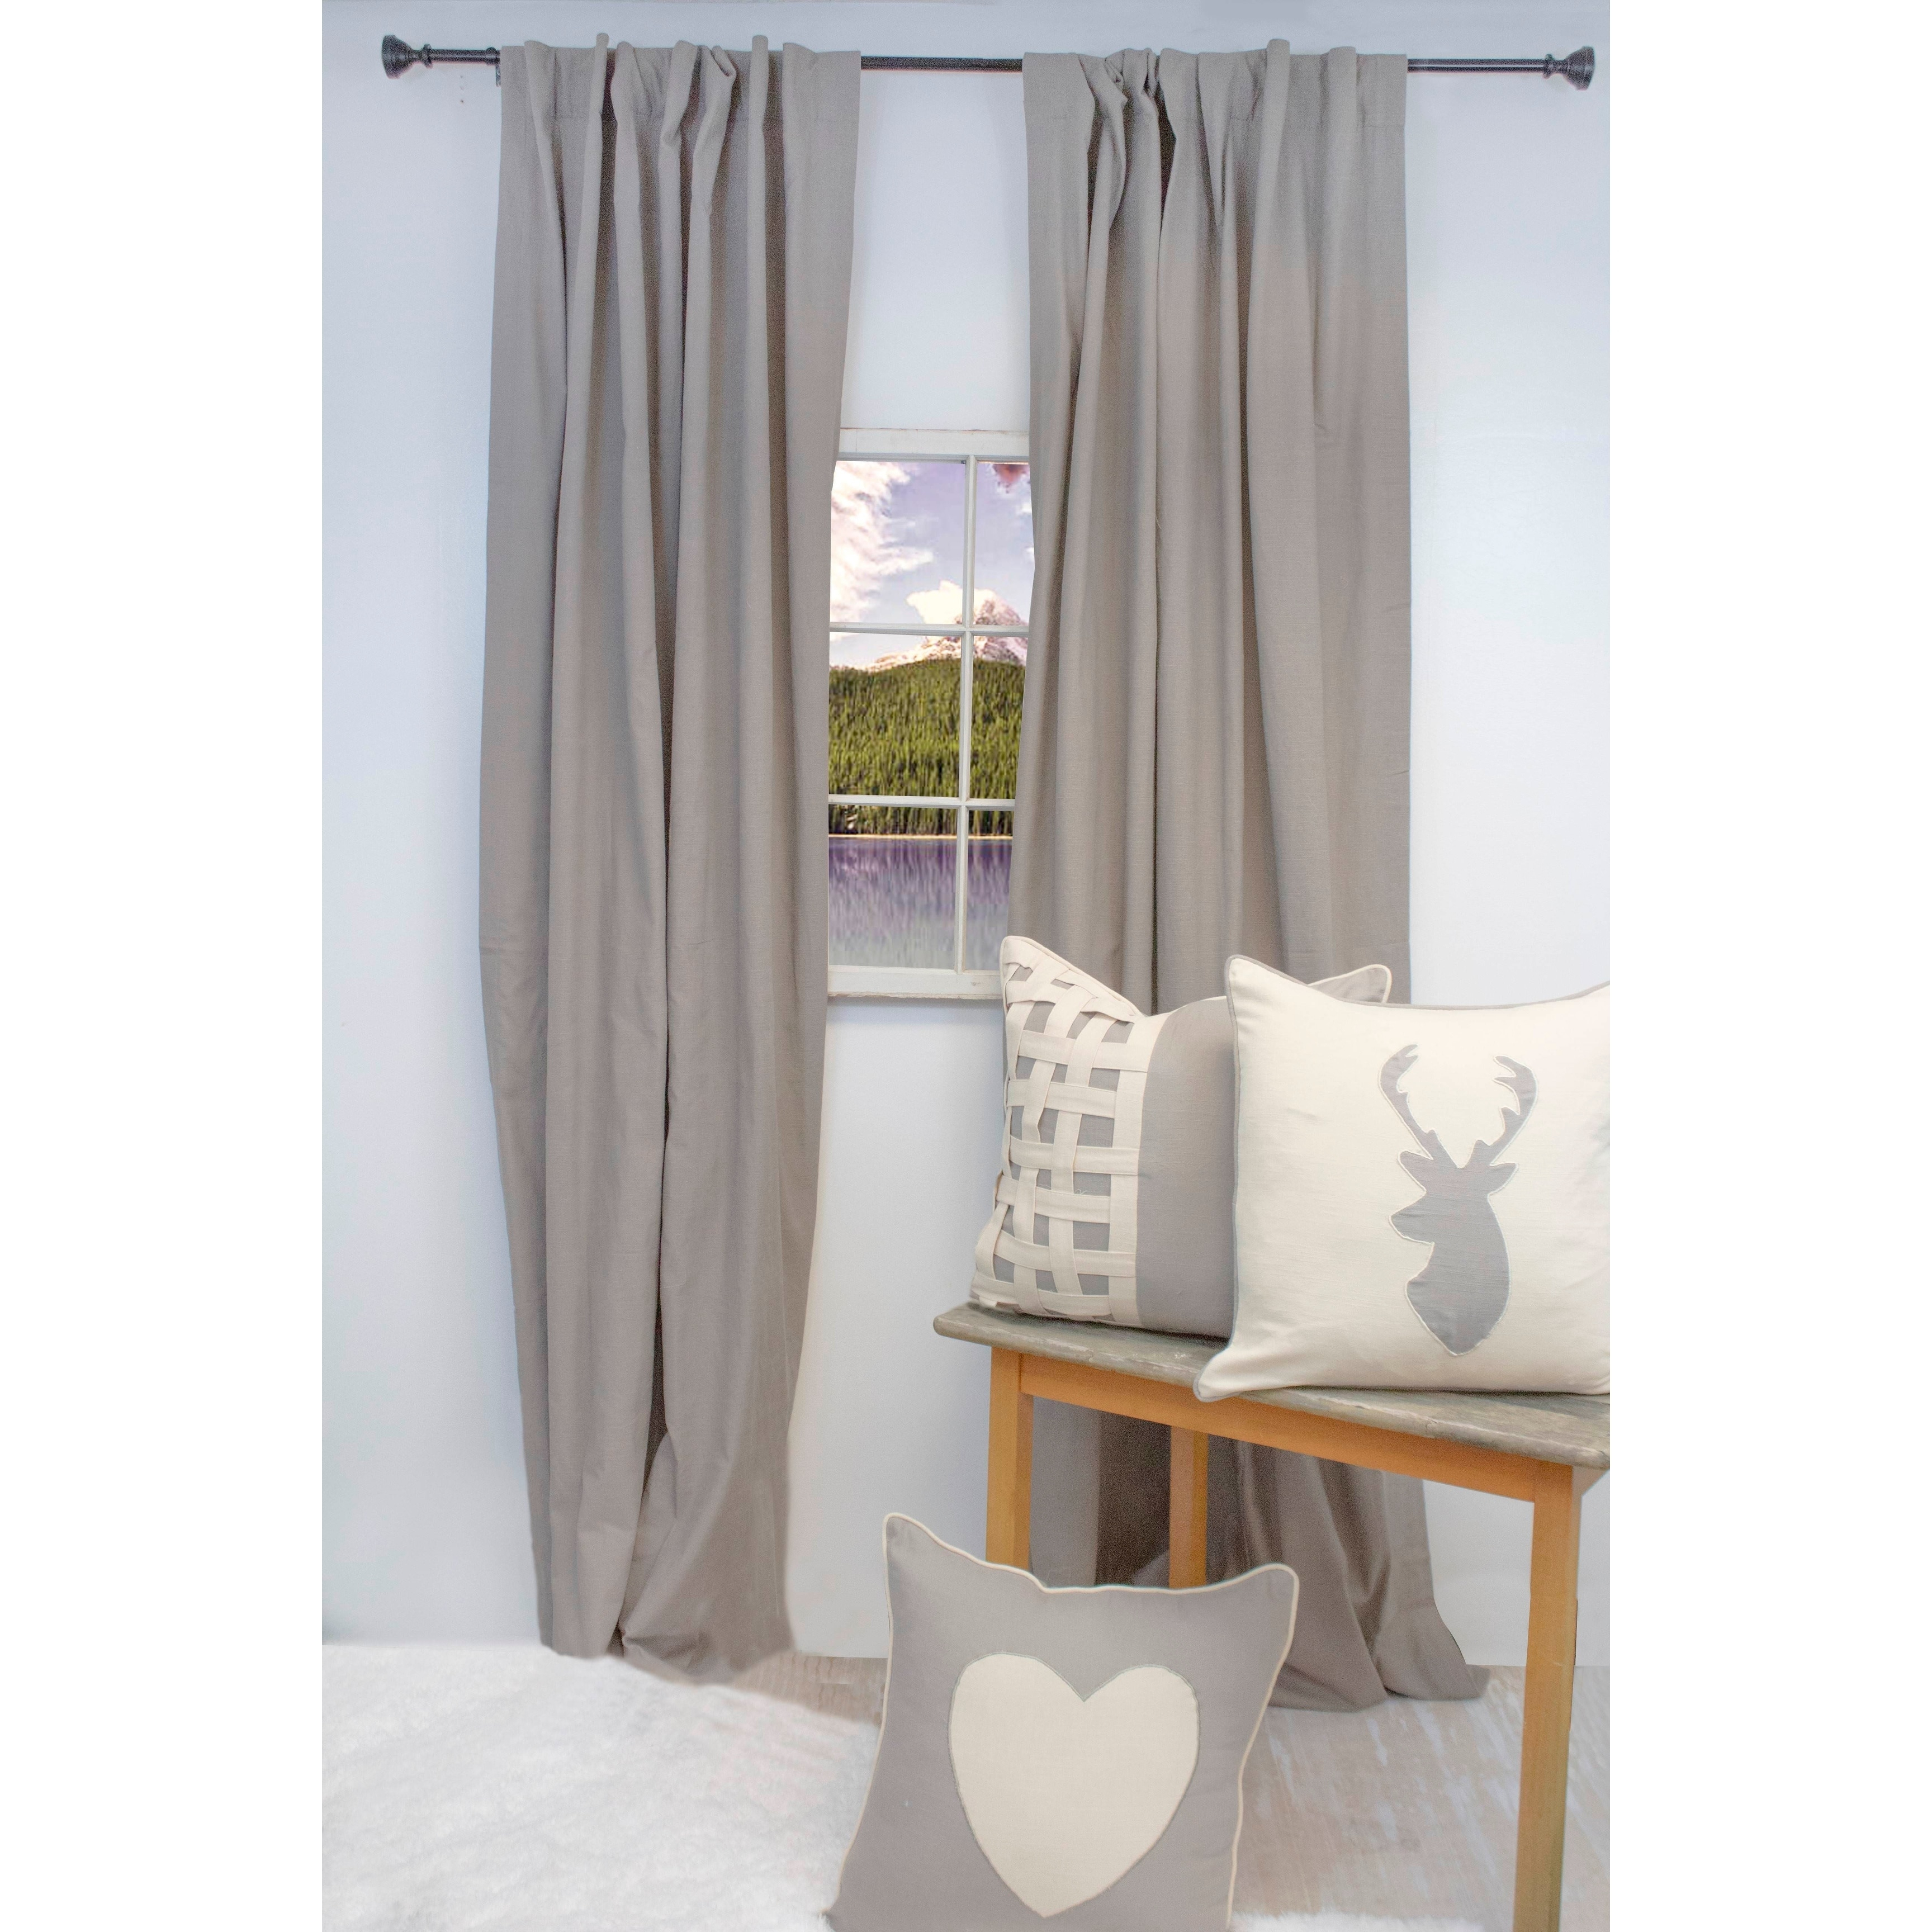 American Colors Brand Heritage Natural Cotton Solid Curtain Panel Pair With Regard To Solid Cotton Curtain Panels (View 6 of 30)